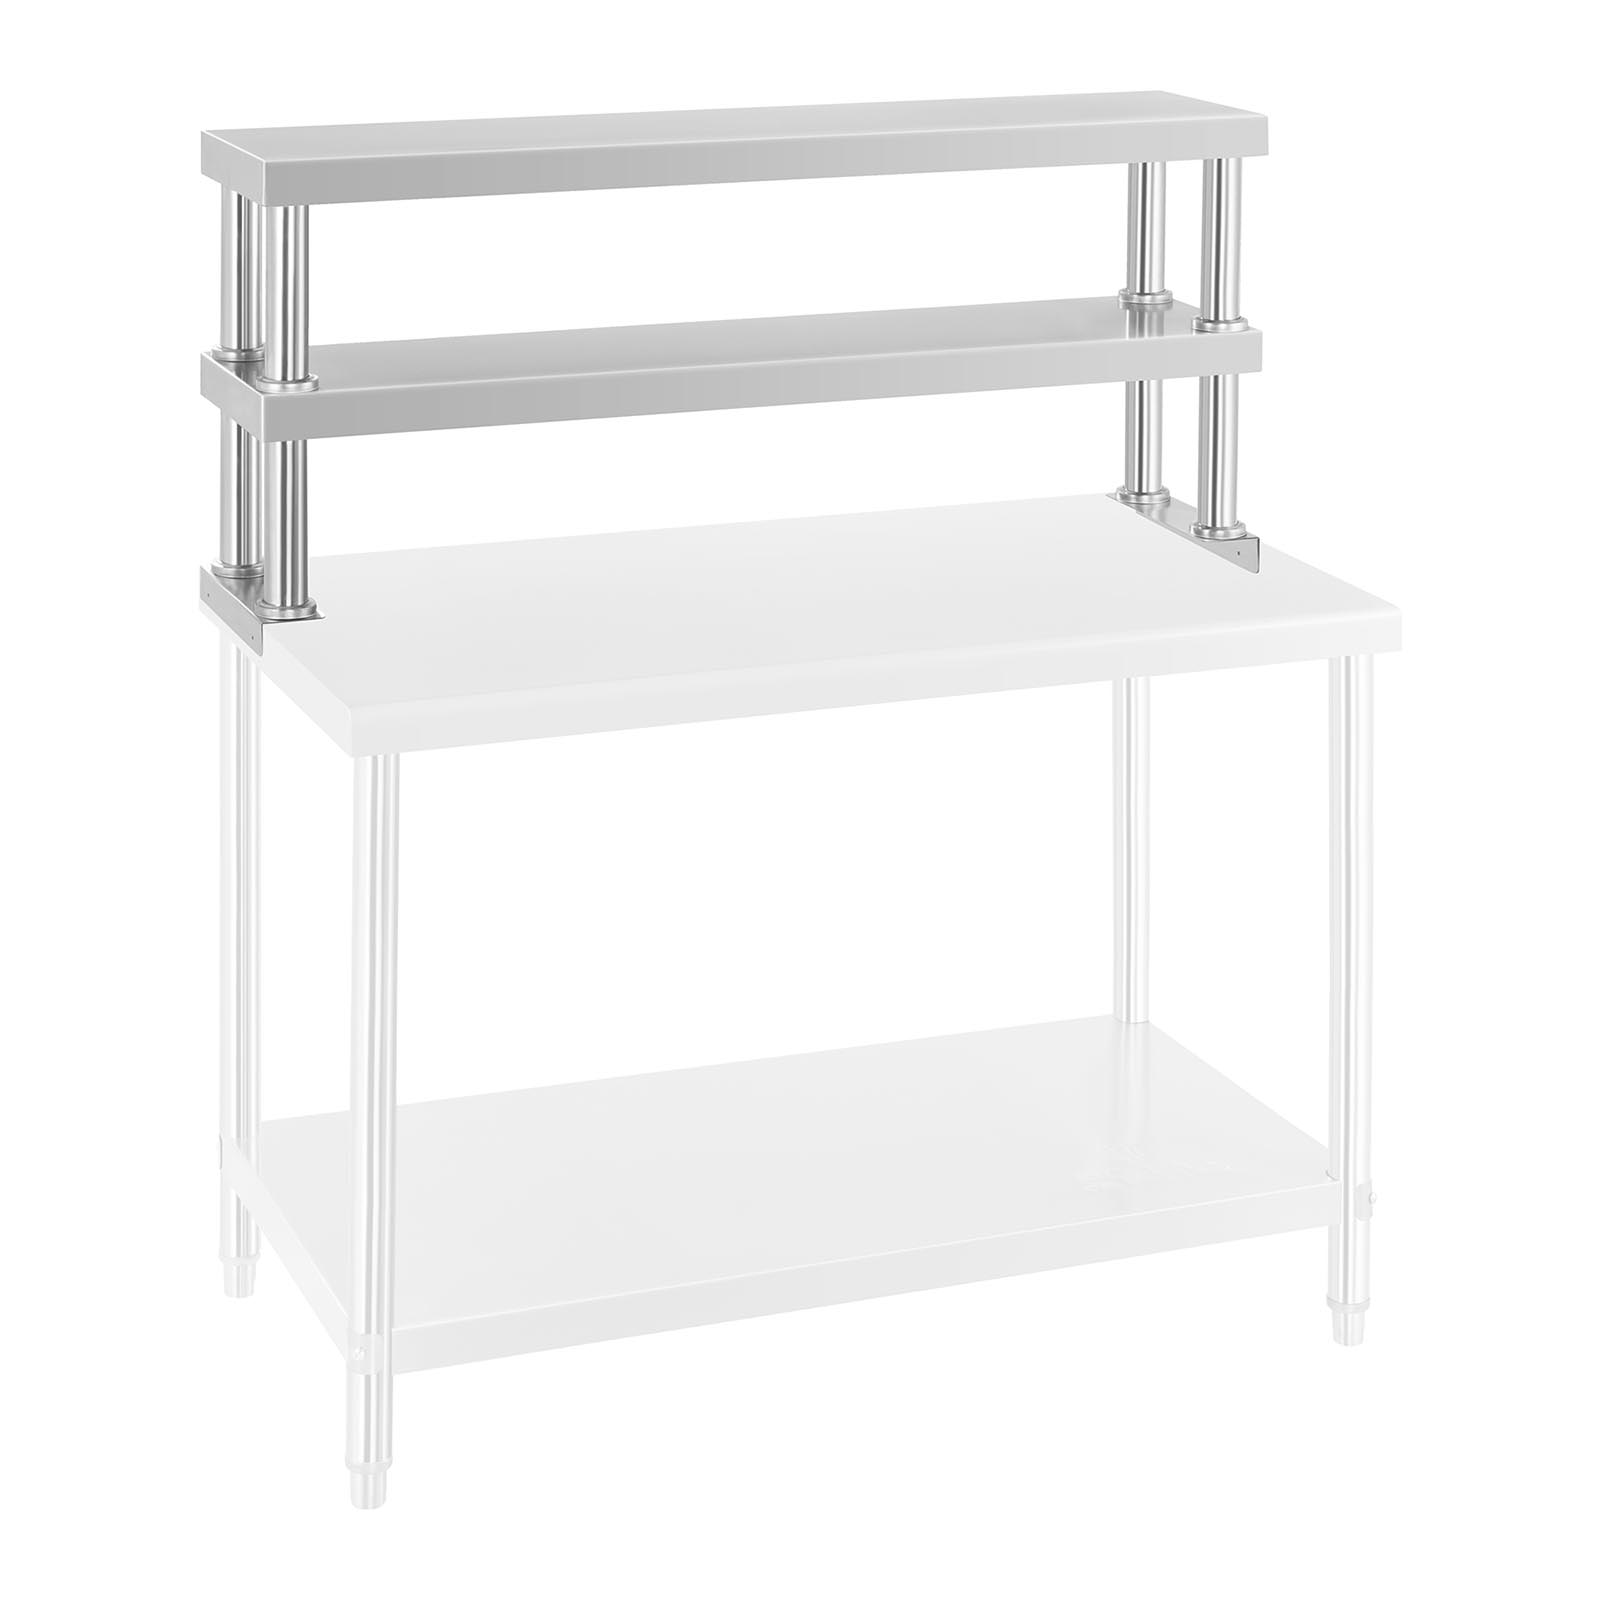 Support Etagere Inox Etagere D 39appoint Inox Pour Table De Travail Support Pizza